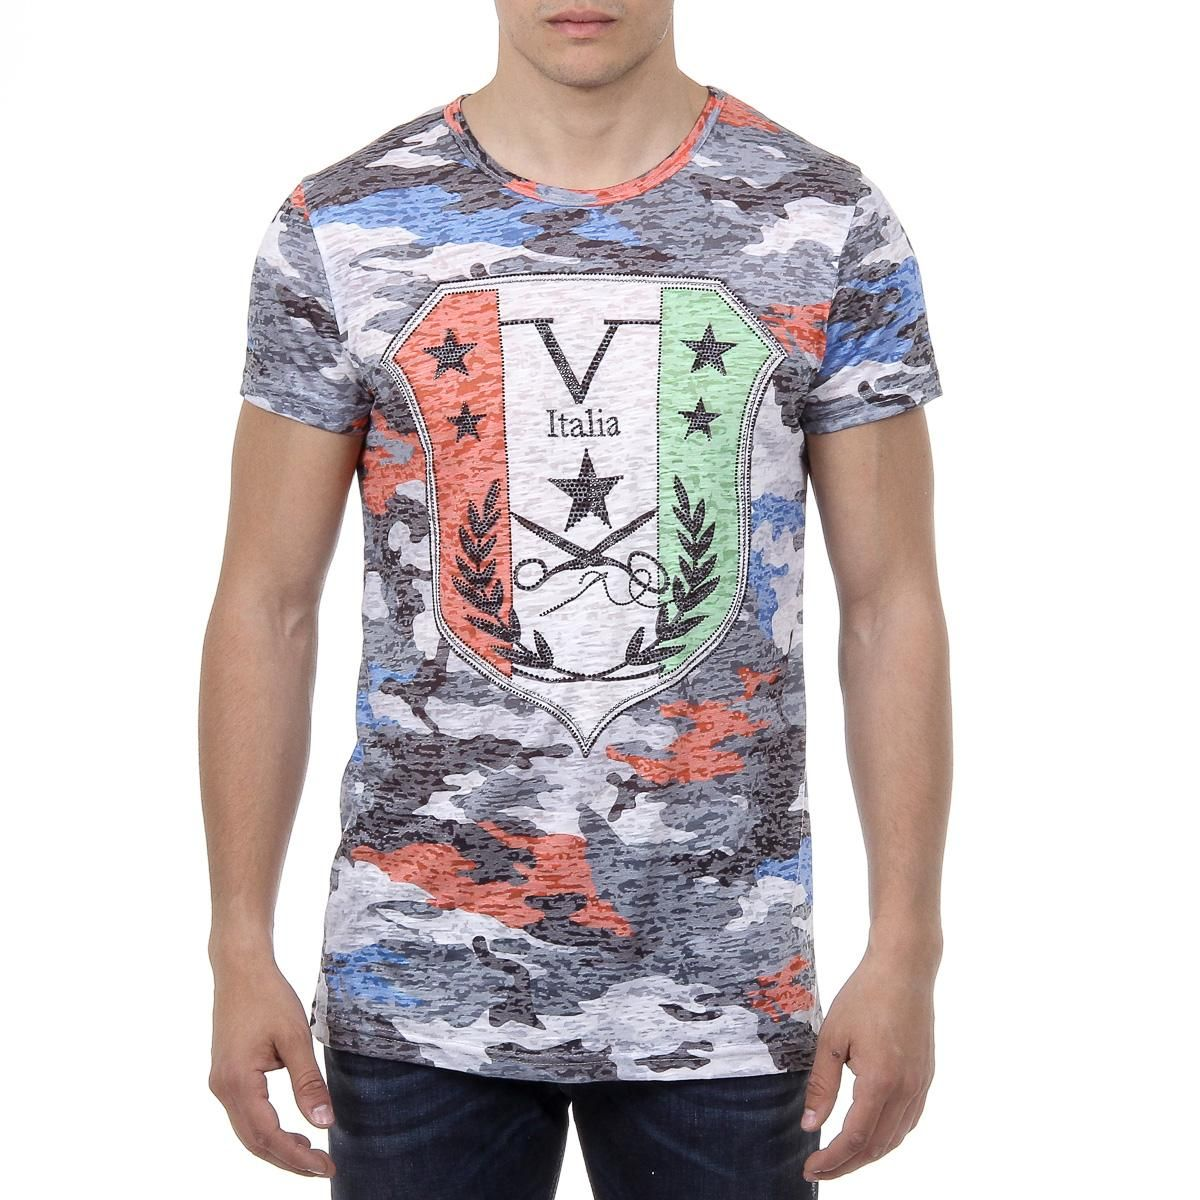 V 1969 Italia Mens T-shirt Short Sleeves Round Neck Multicolor OWEN ... 16252e91975